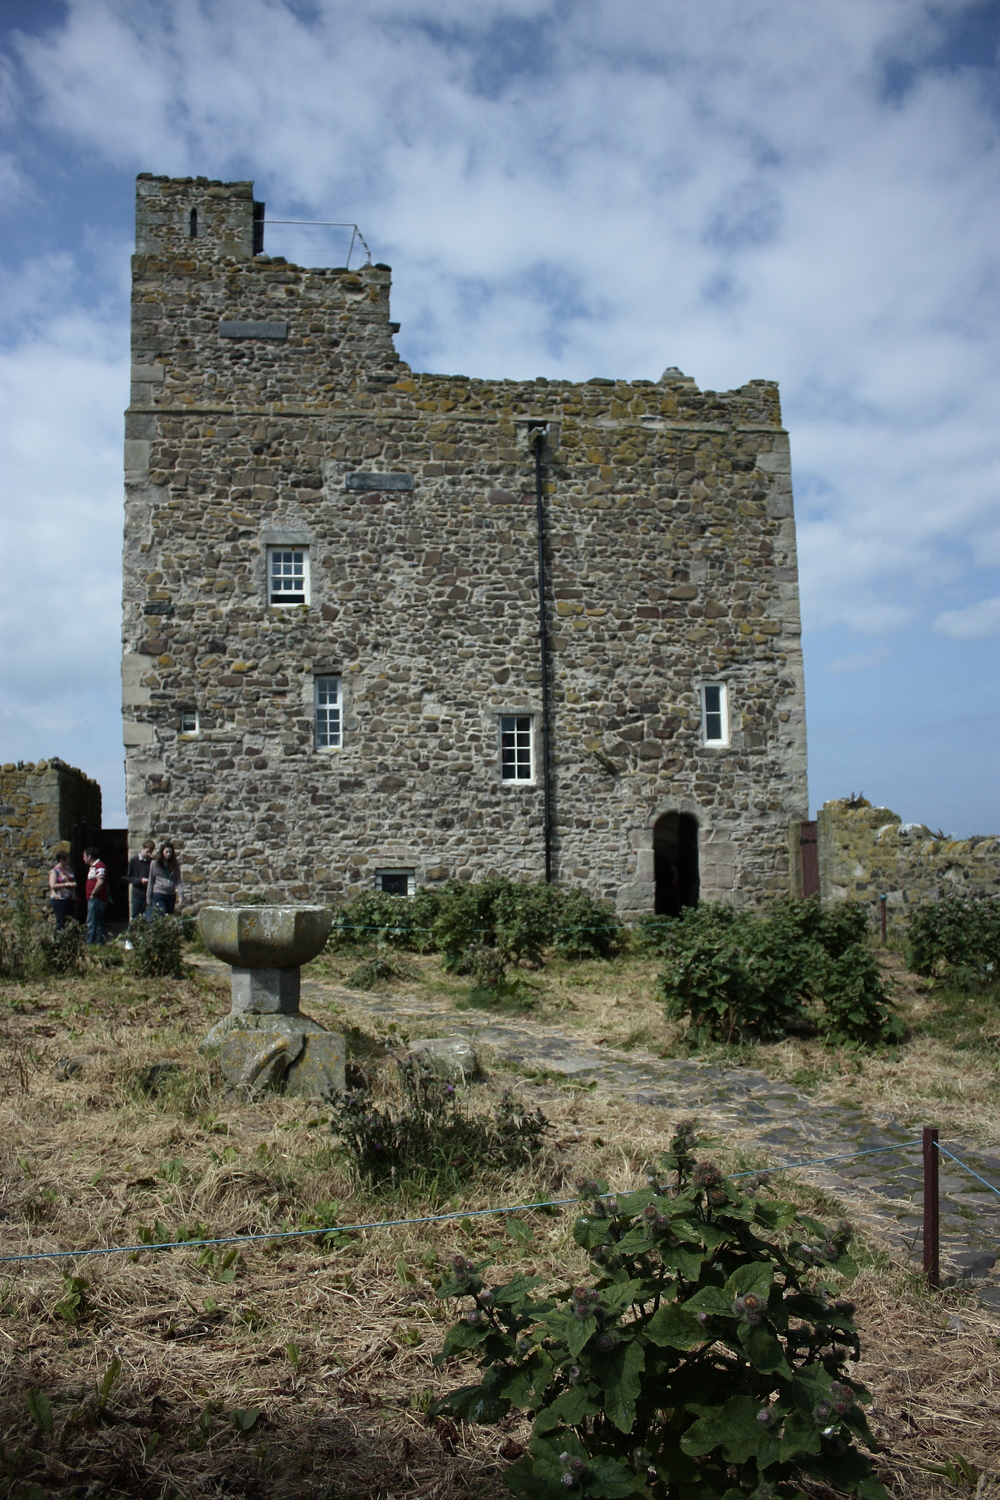 Pele Tower